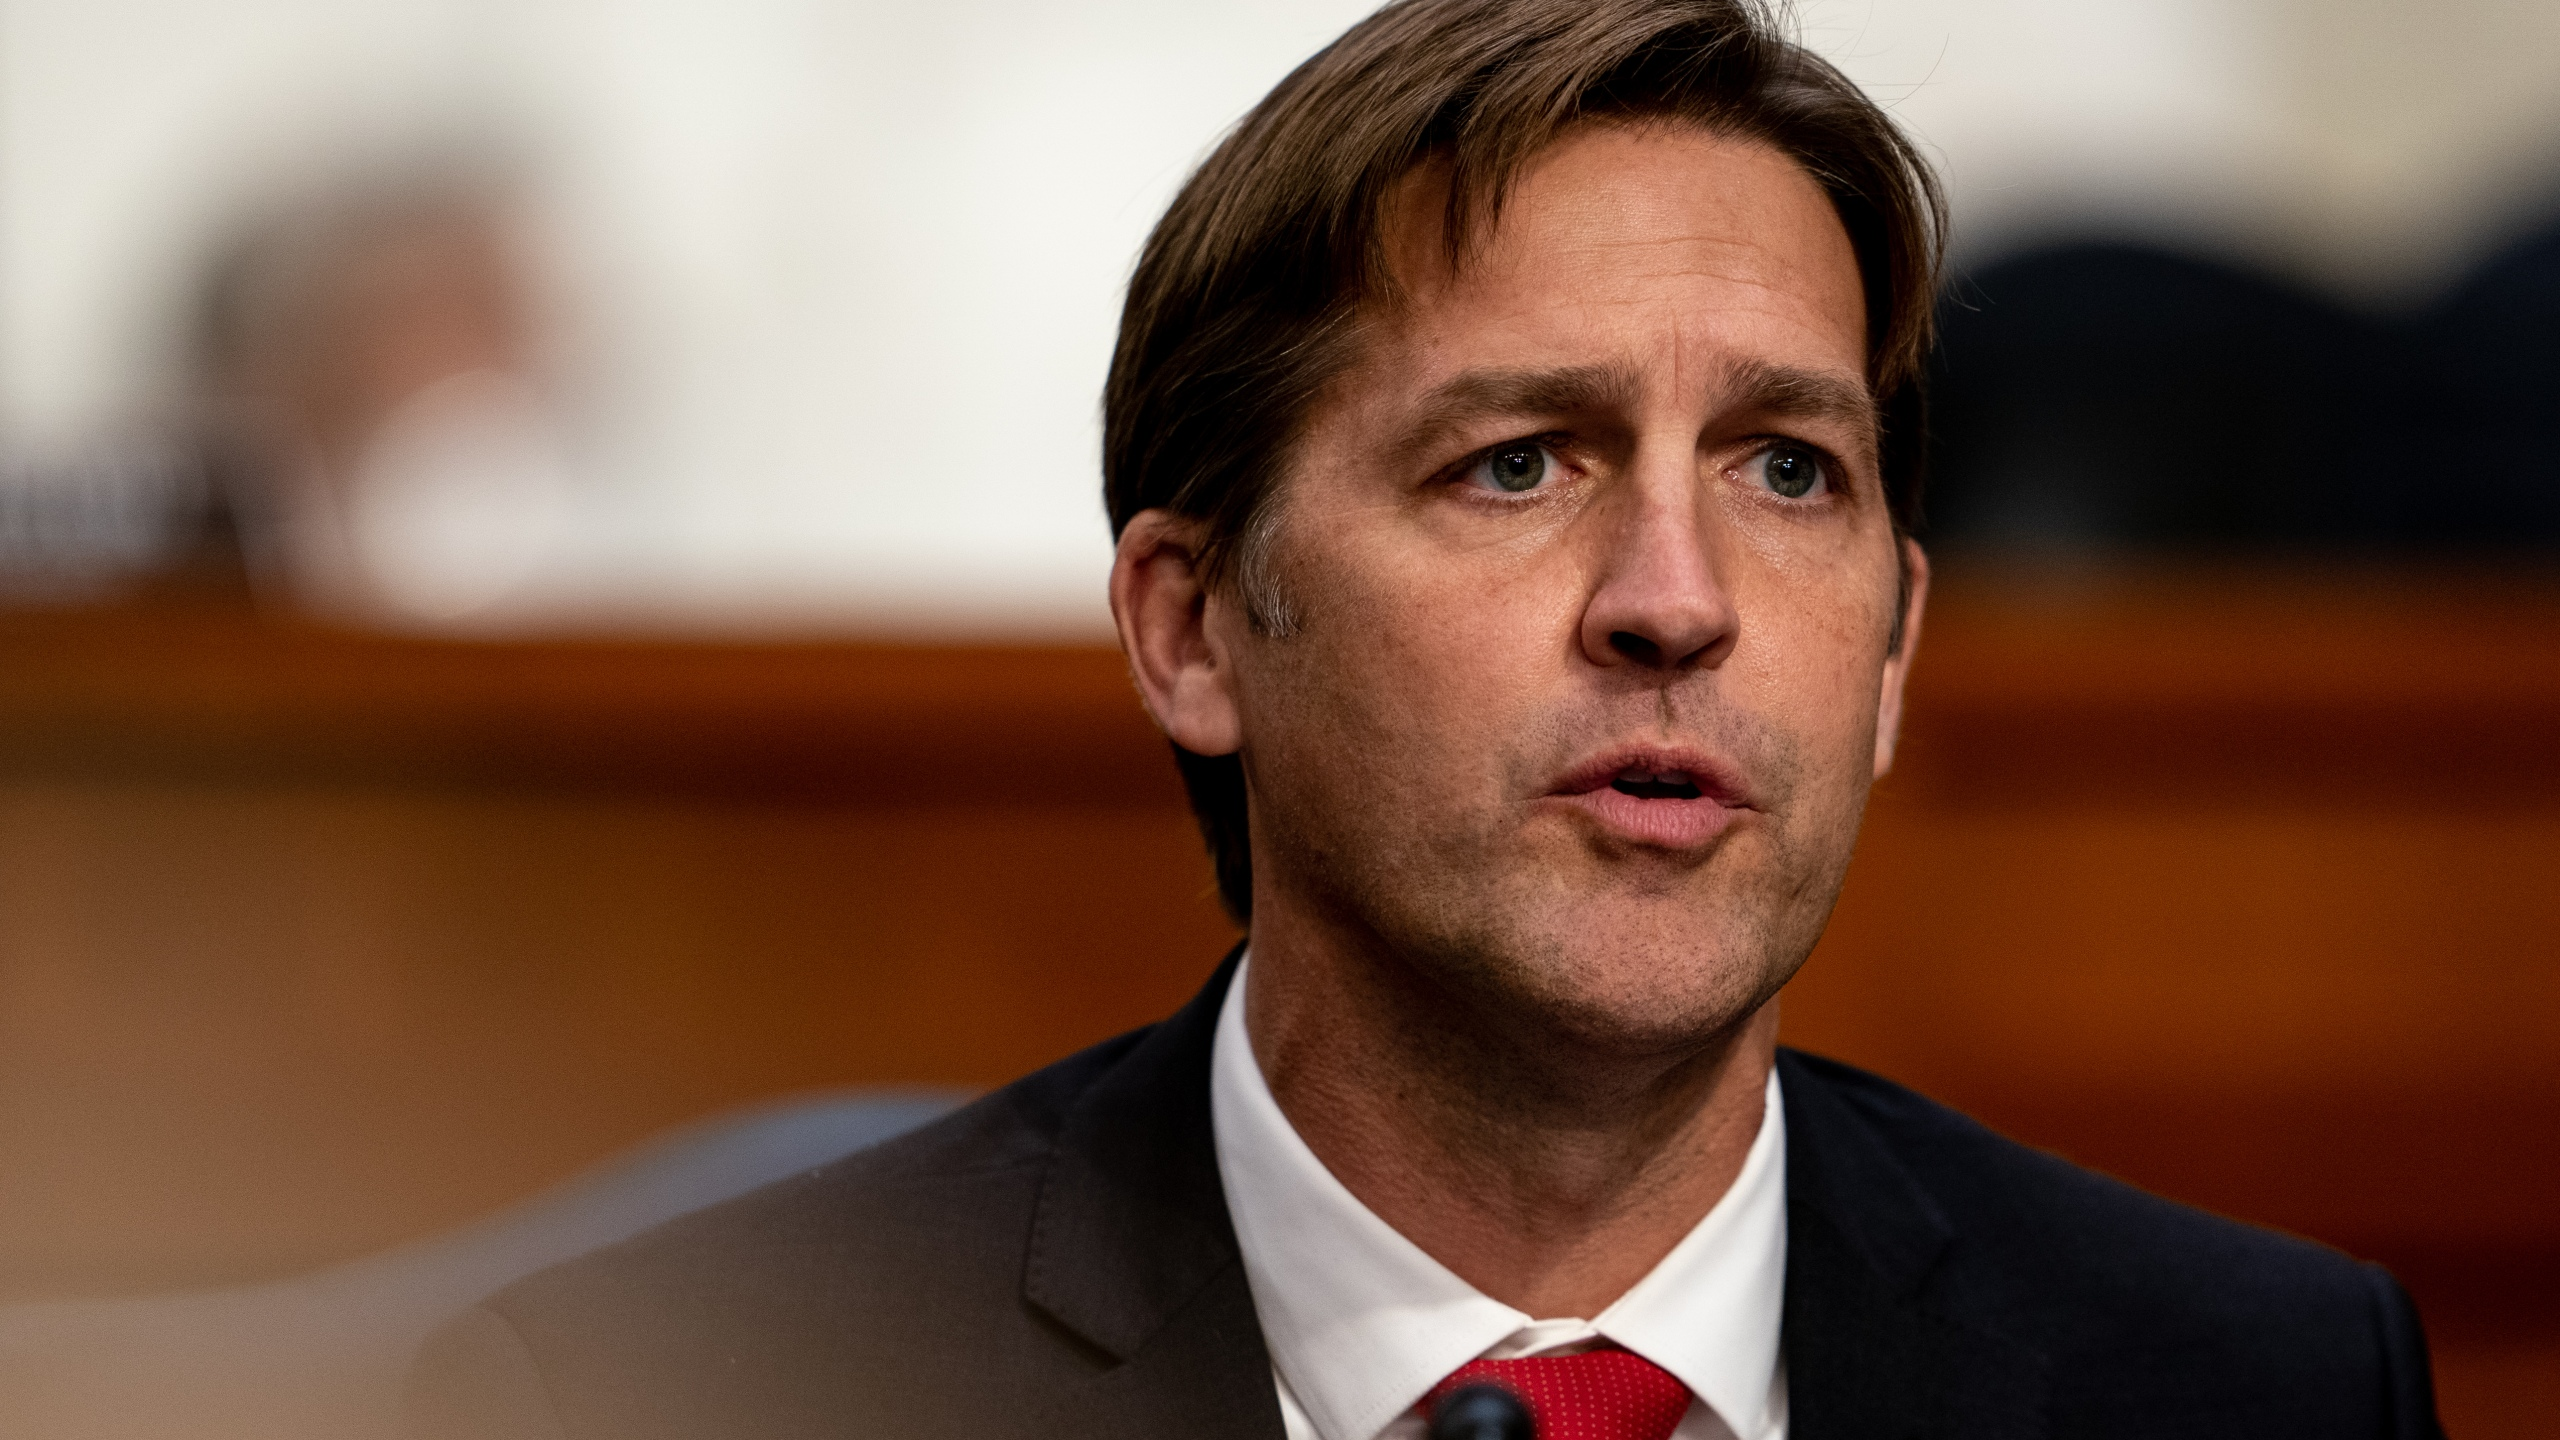 U.S. Sen. Ben Sasse (R-NE) speaks during Supreme Court Justice nominee Judge Amy Coney Barrett's Senate Judiciary Committee confirmation hearing for Supreme Court Justice in the Hart Senate Office Building on October 12, 2020 in Washington, DC. (Erin Schaff-Pool/Getty Images)